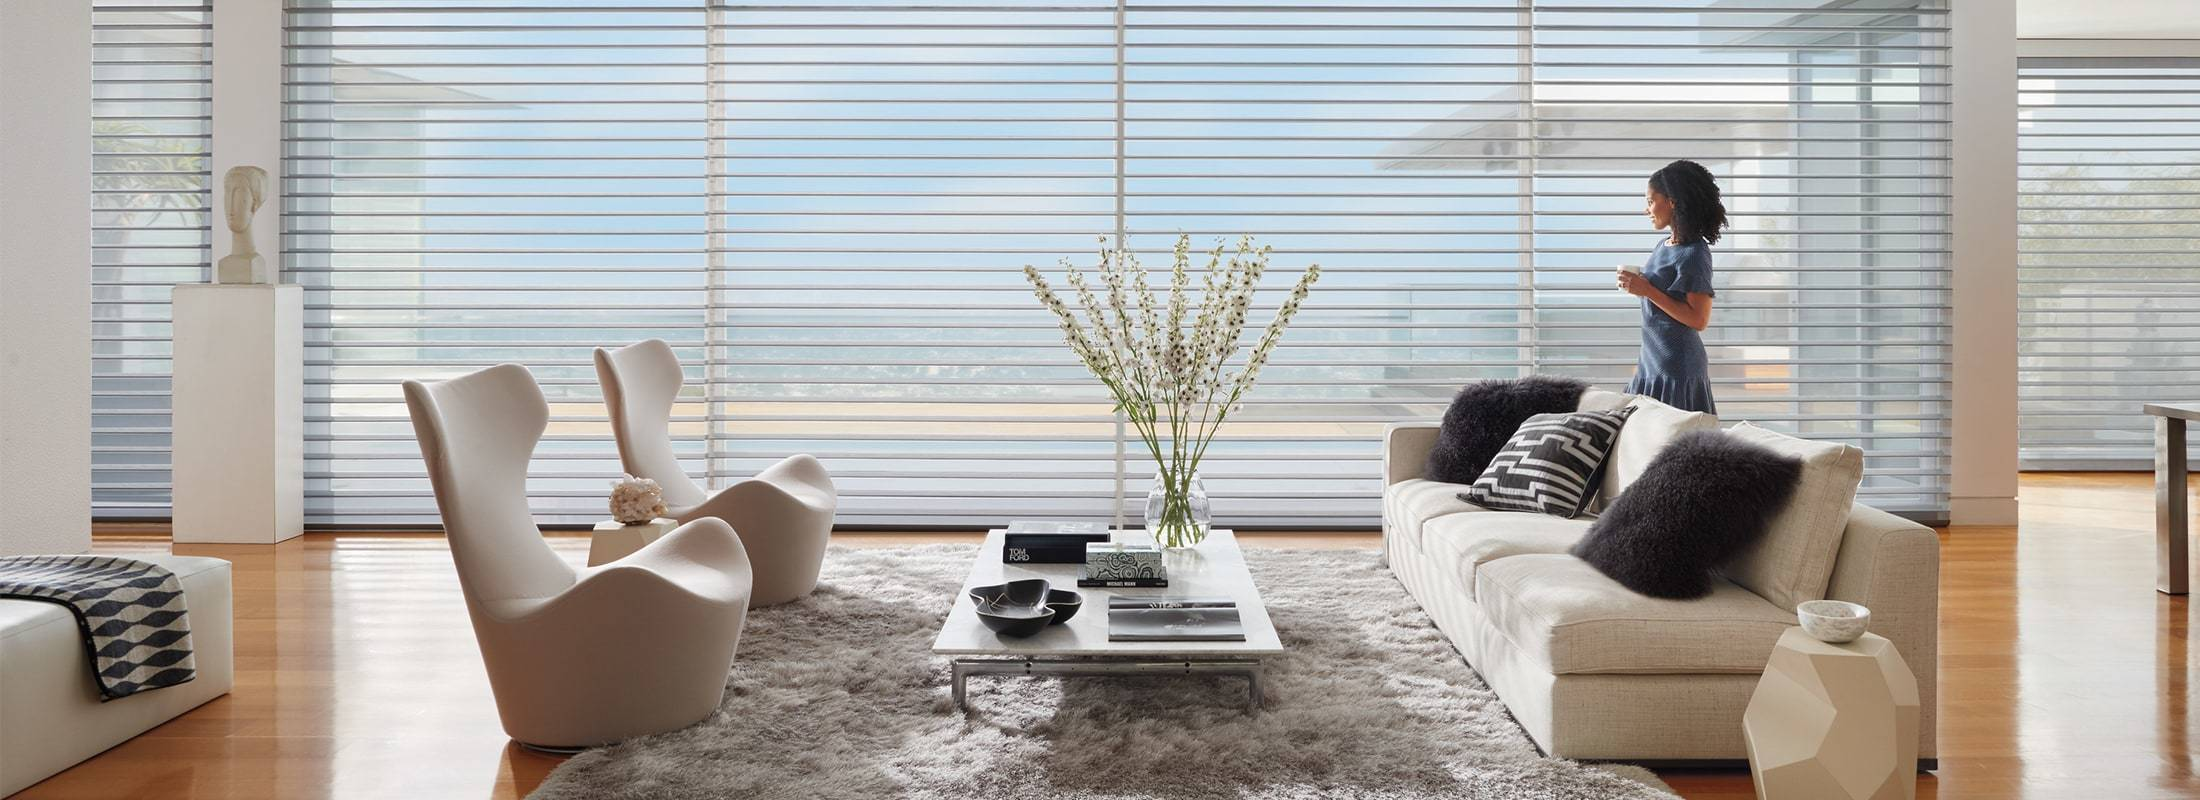 Silhouette® Window Shadings feature soft adjustable fabric vanes that appear to be floating between two sheer fabric panels that beautifully diffuse harsh sunlight. Simply tilt the vanes to achieve your desired level of light and privacy. Learn more about Silhouette® Window Shadings.